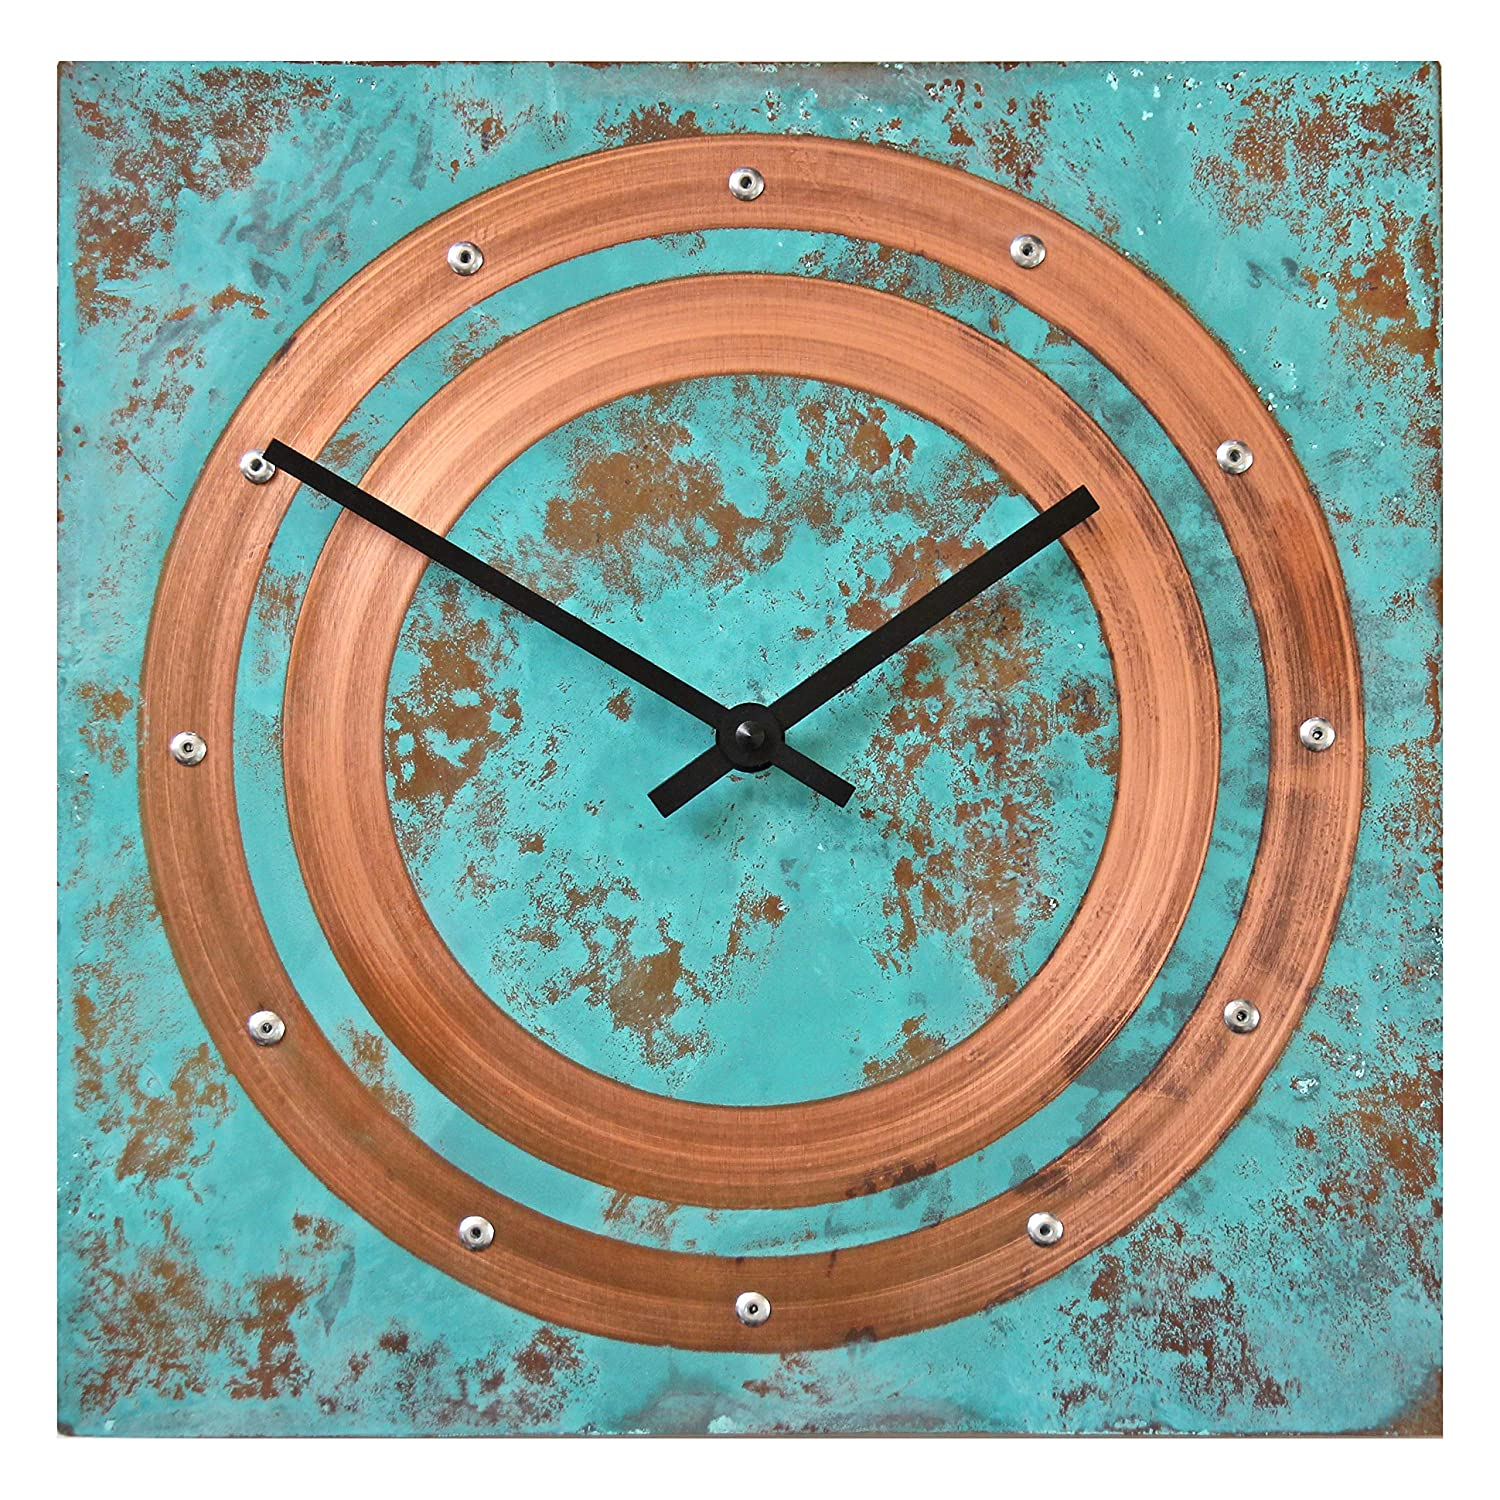 Large Square Turquoise Copper Wall Clock 12-inch - Silent Non Ticking Gift for Home/Office/Kitchen/Bedroom/Living Room